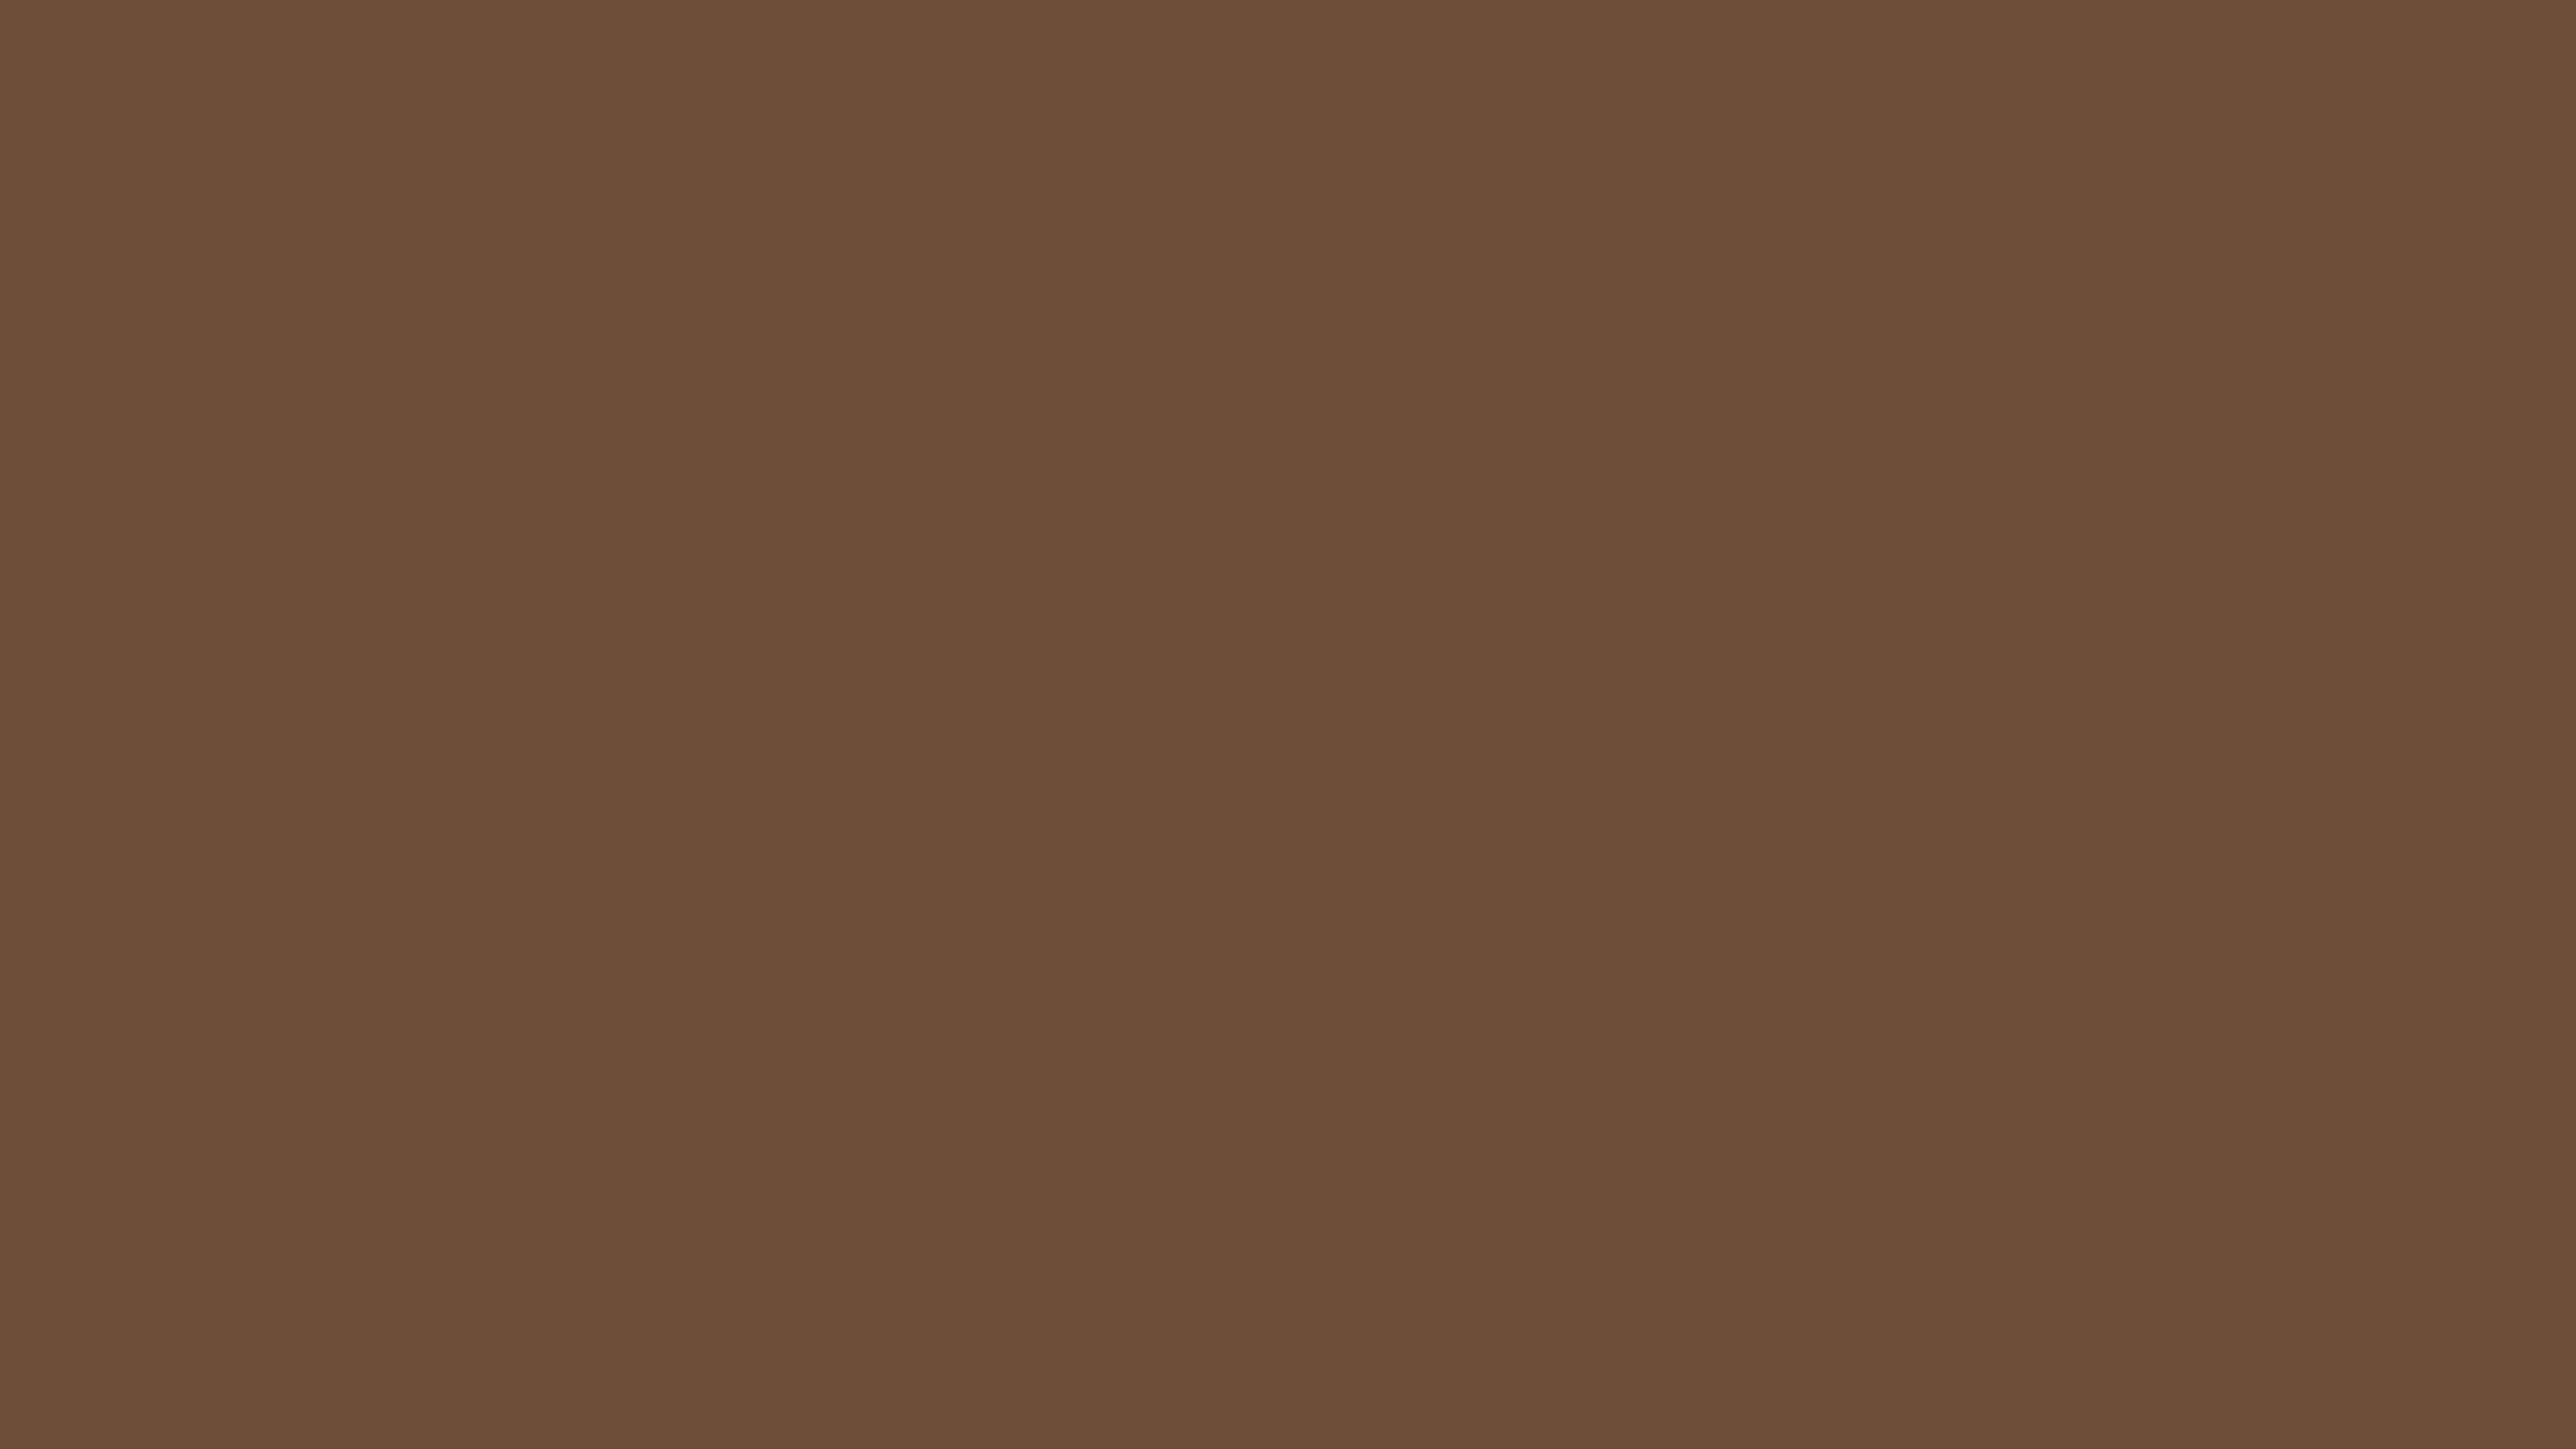 5120x2880 Tuscan Brown Solid Color Background